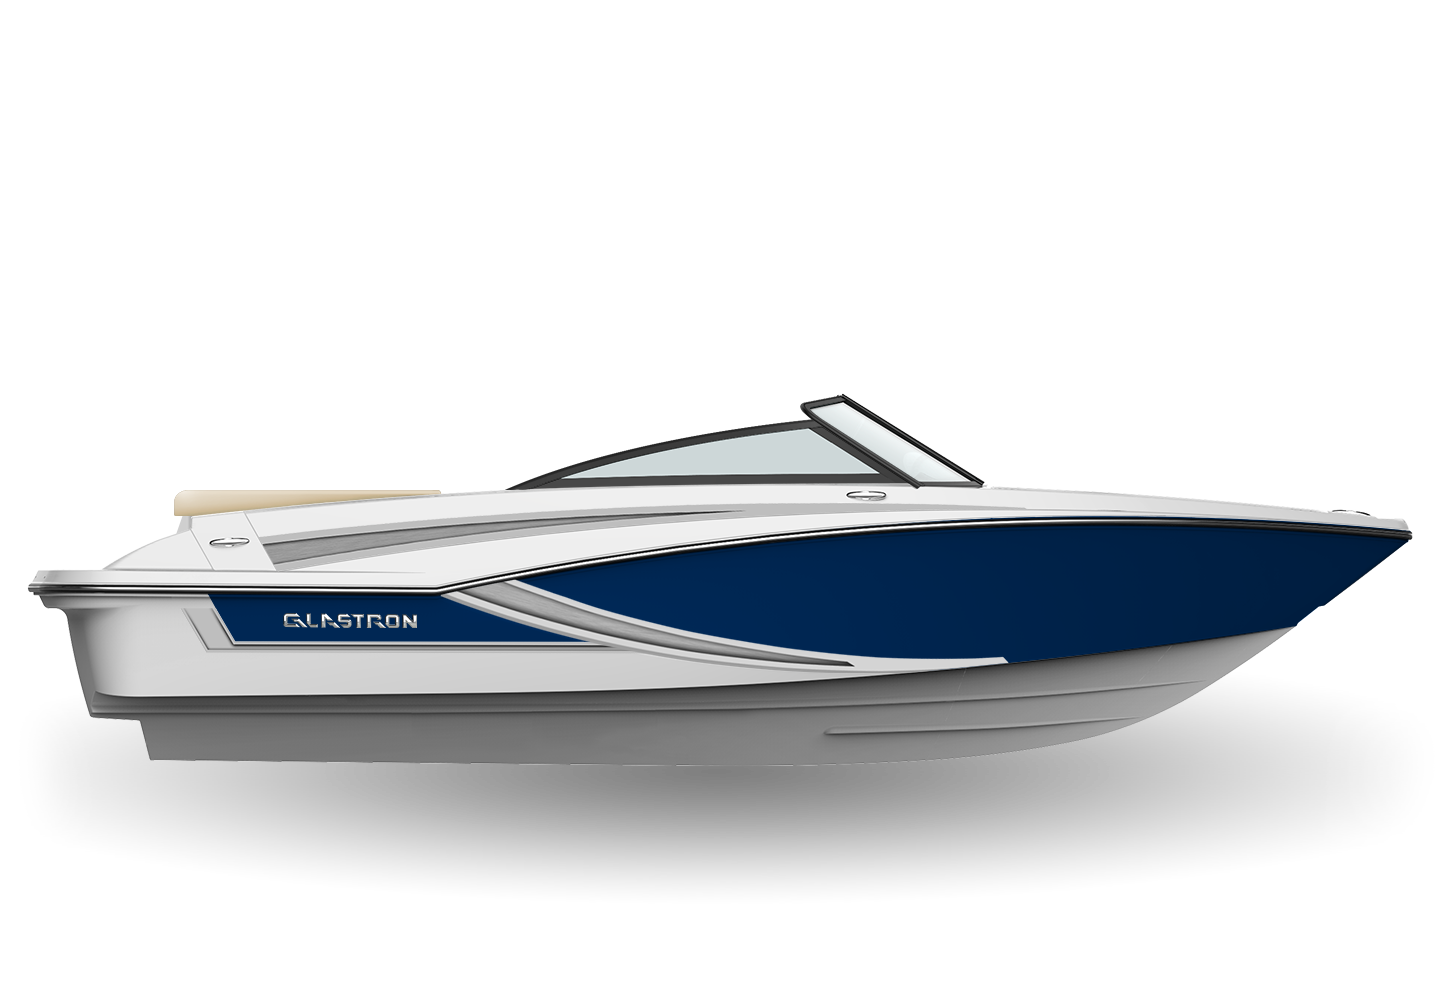 Glastron Boat Wiring Diagram Library Chaparral